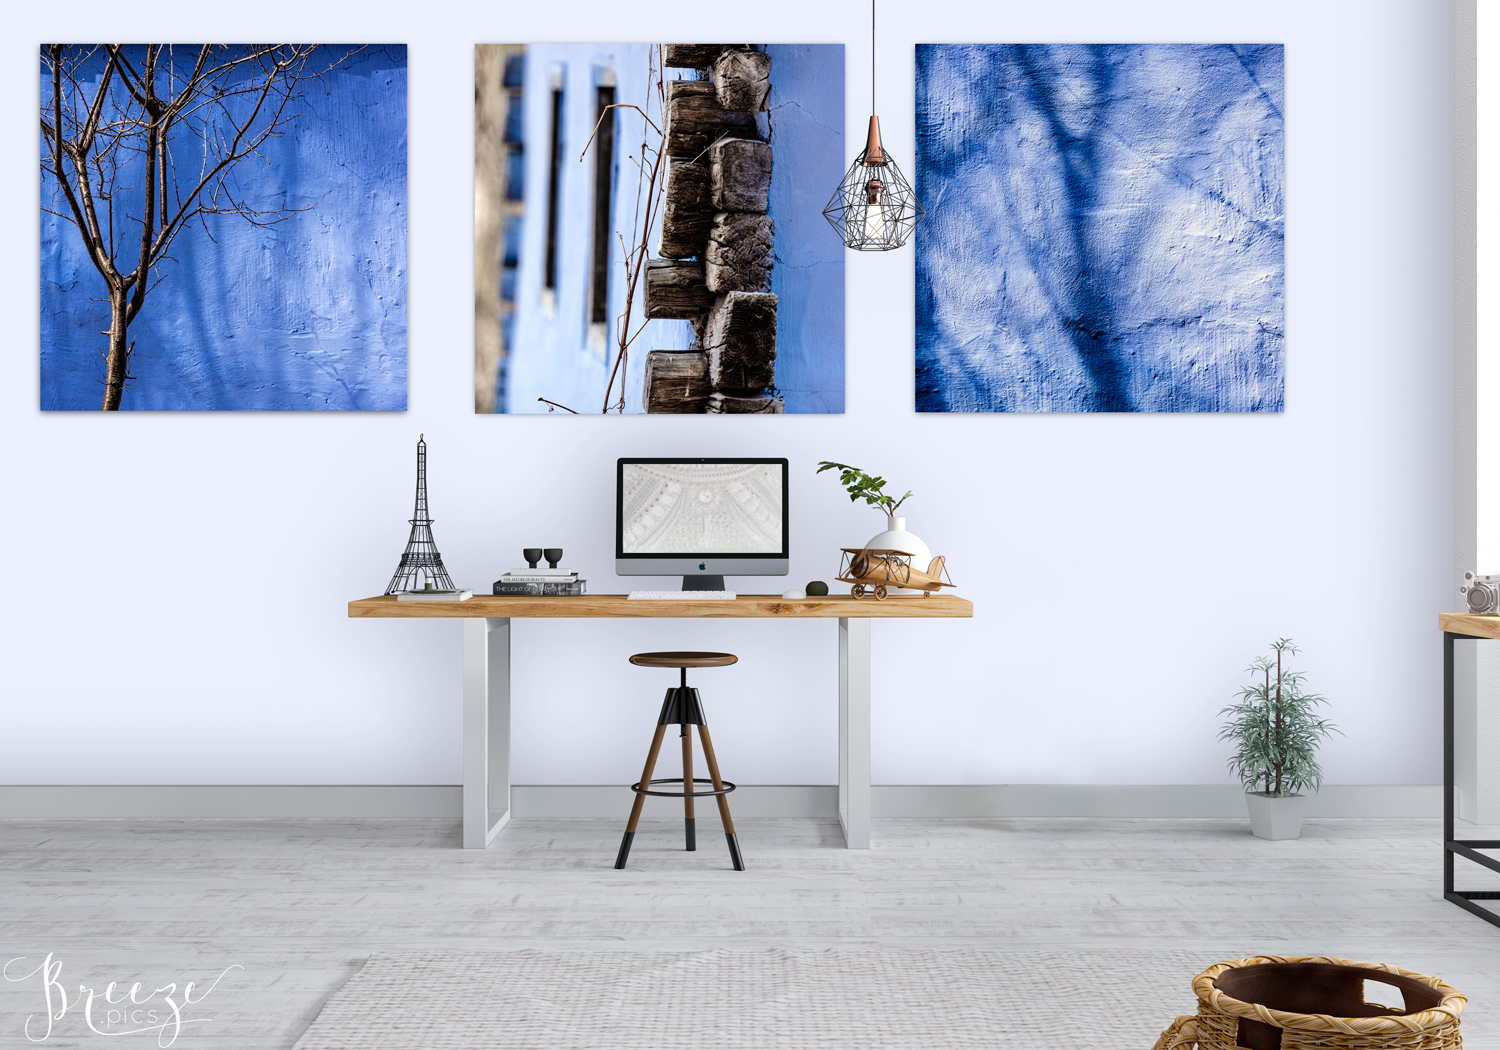 Blue fine art nature photograph, home decor prints, Breeze pics